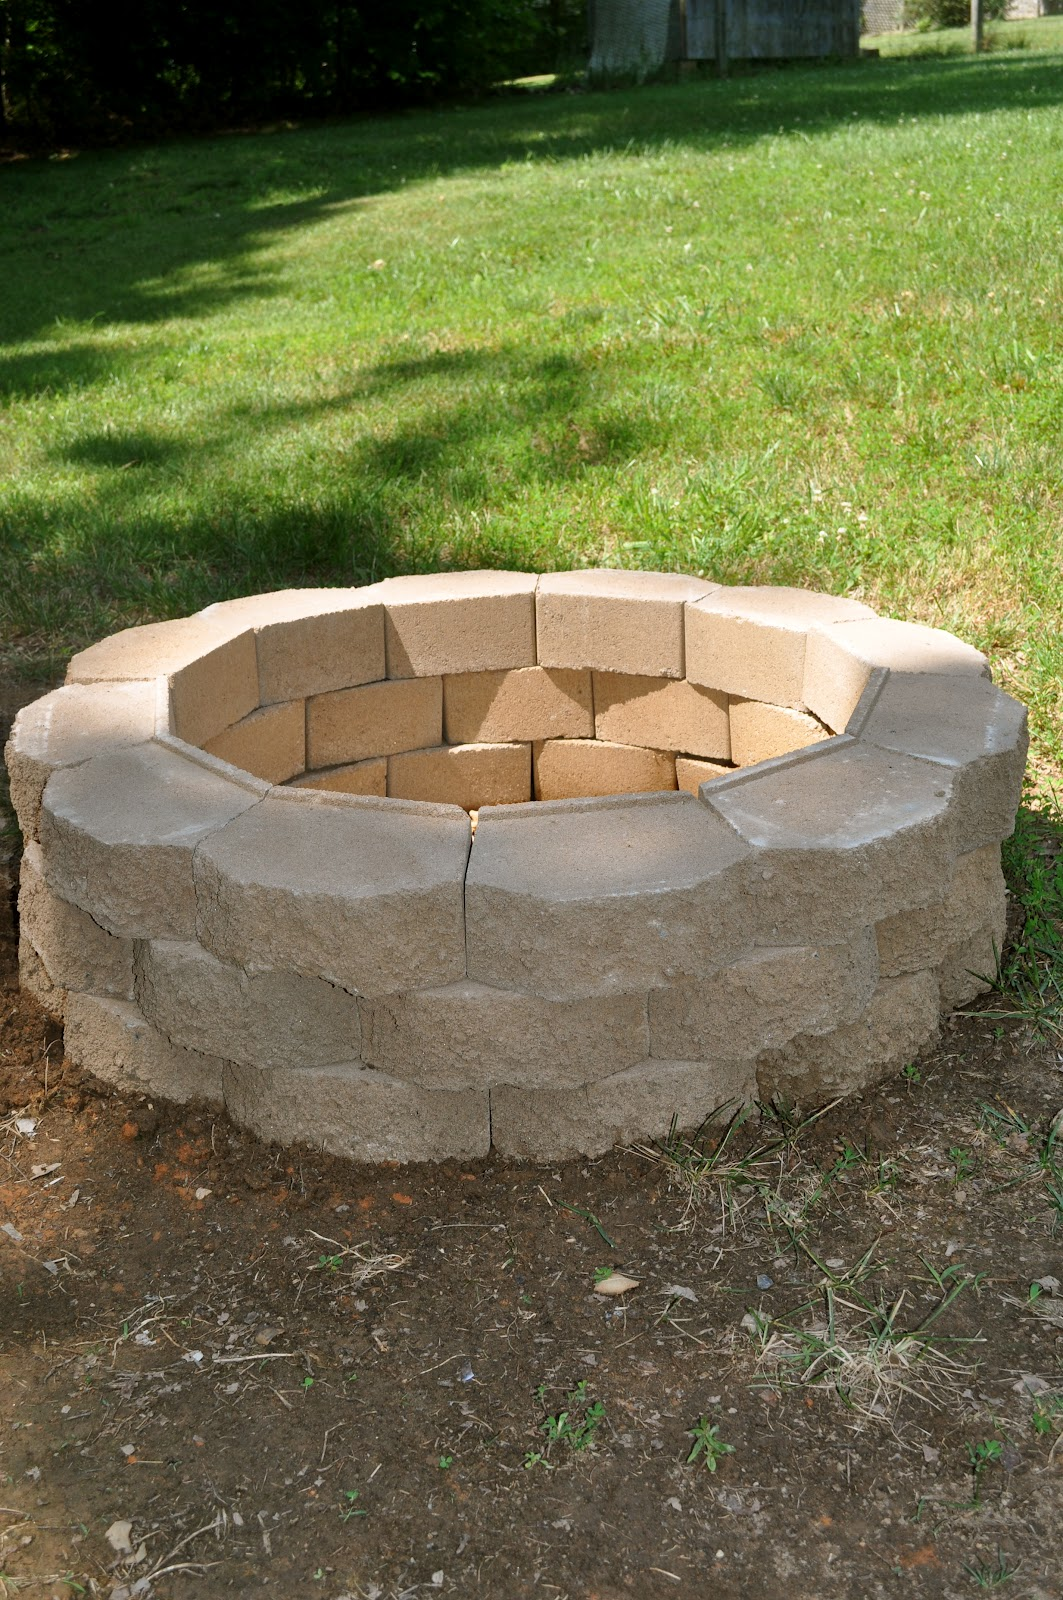 diy outdoor brick fire pit | fireplace design ideas